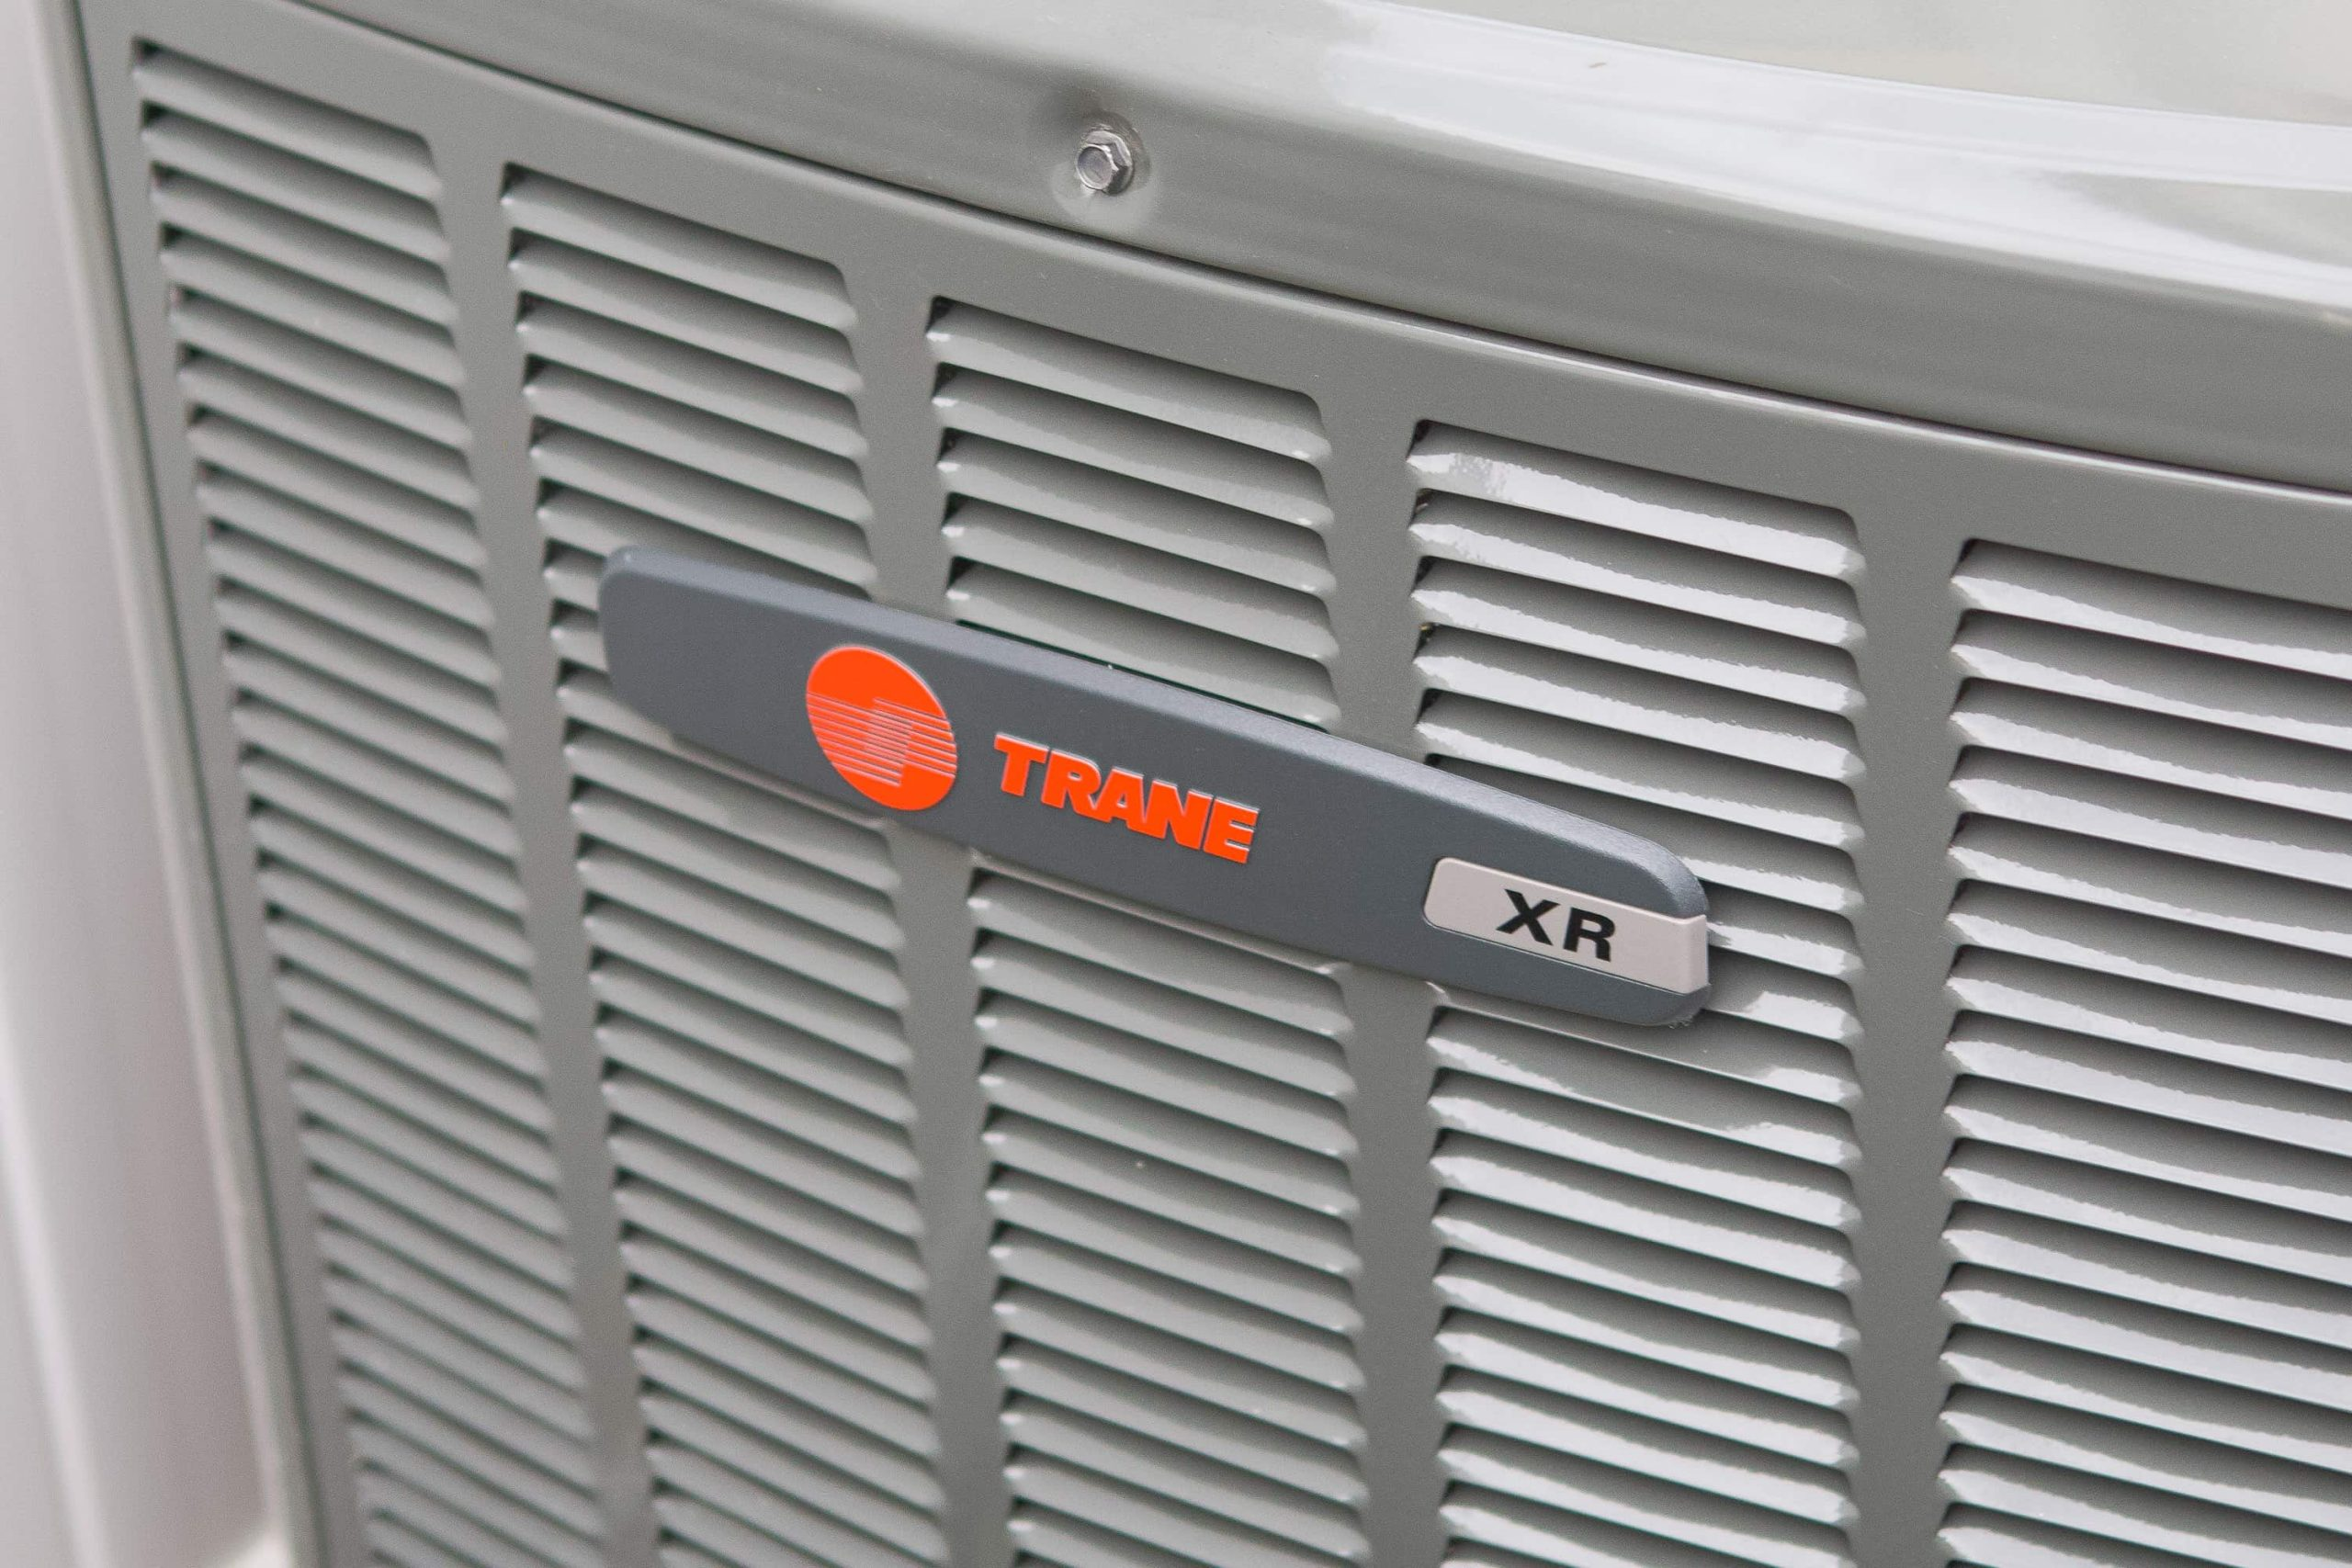 Choosing Trane for our new HVAC system